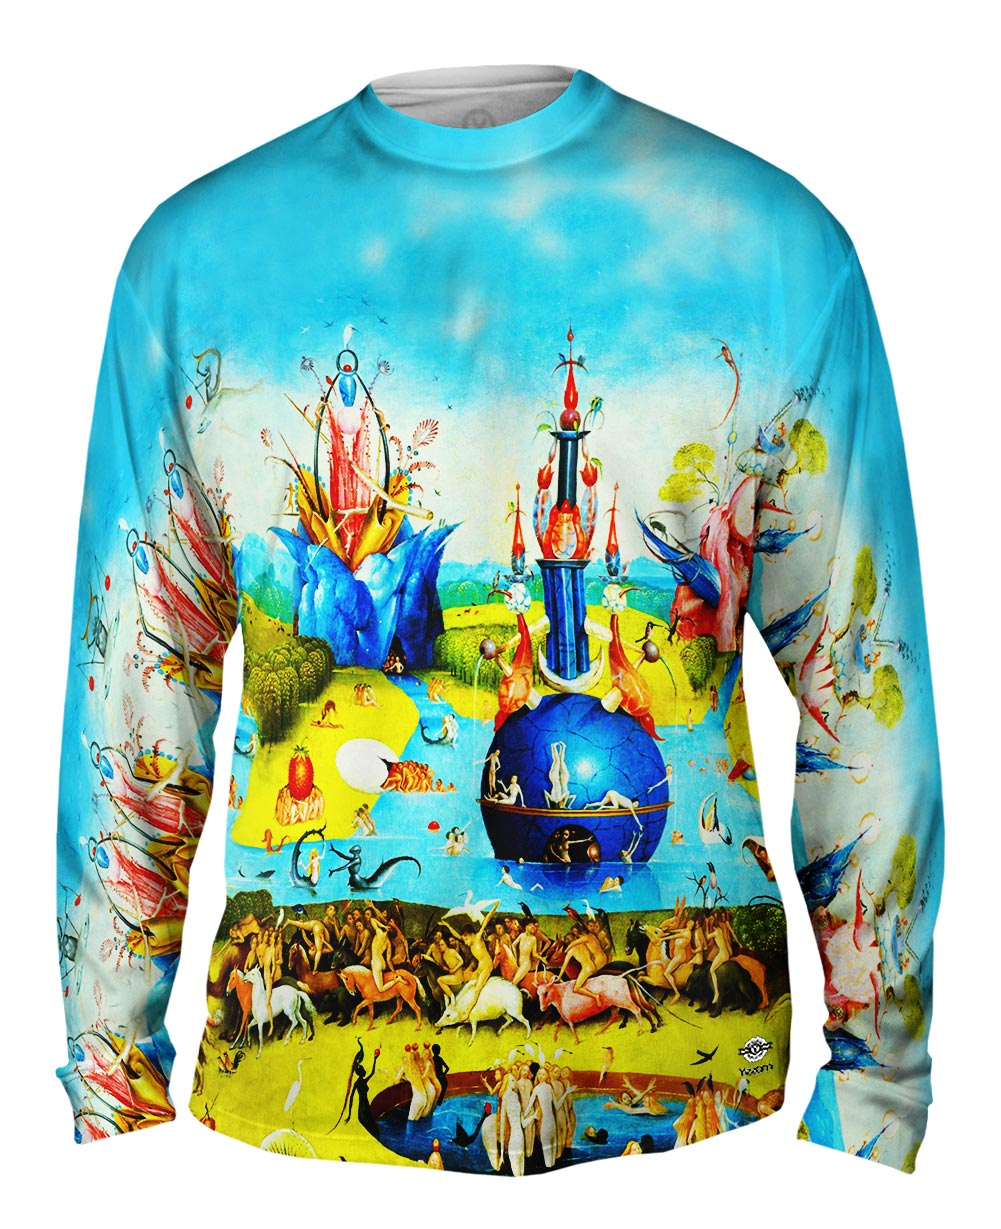 Yizzam Hieronymus Bosch The Garden Of Earthly Delights 01 Mens Long Sleeve